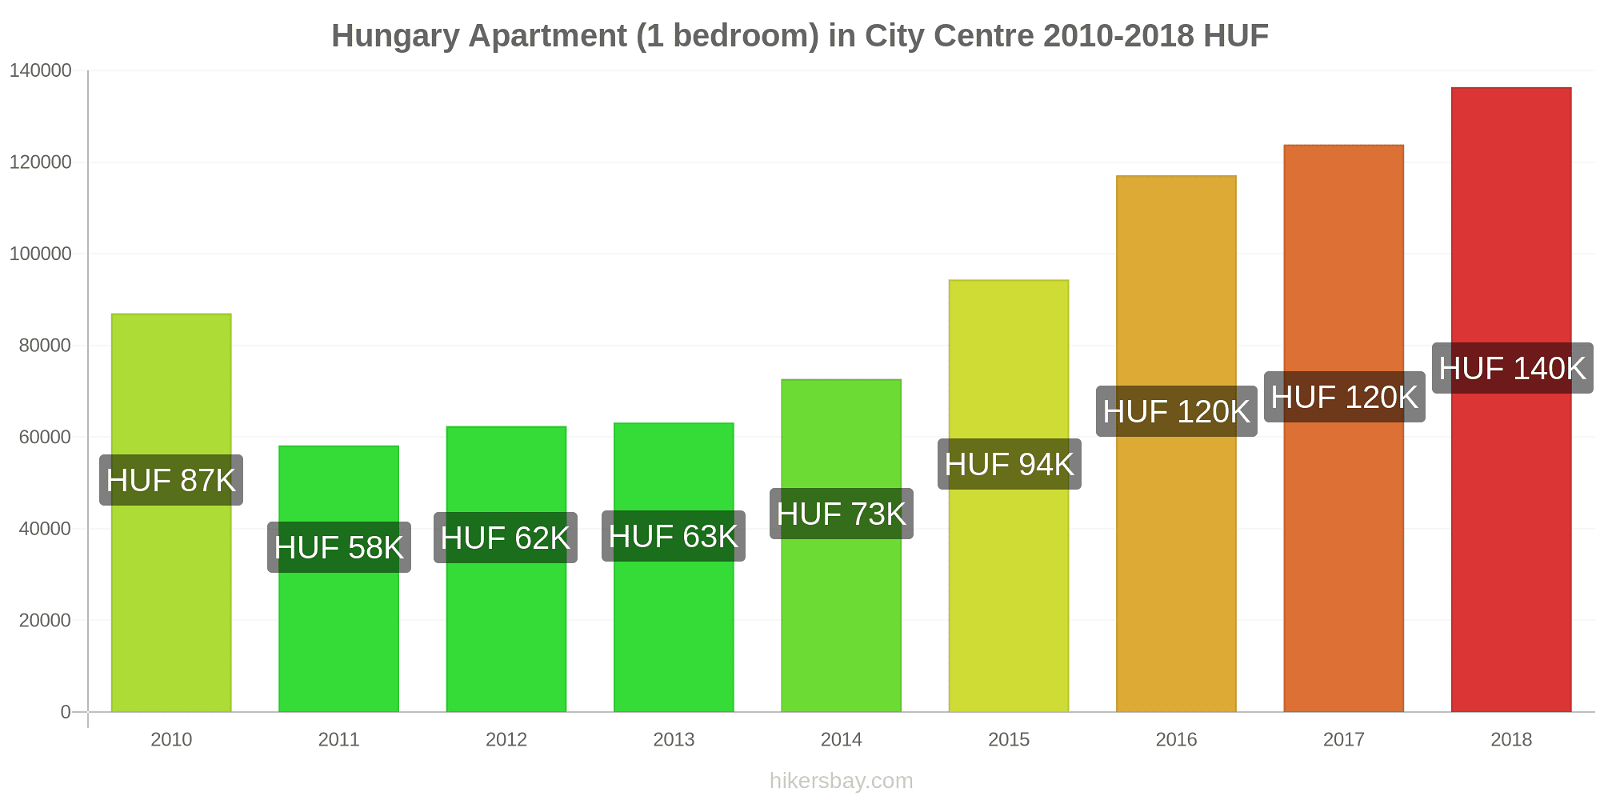 Hungary price changes Apartment (1 bedroom) in City Centre hikersbay.com